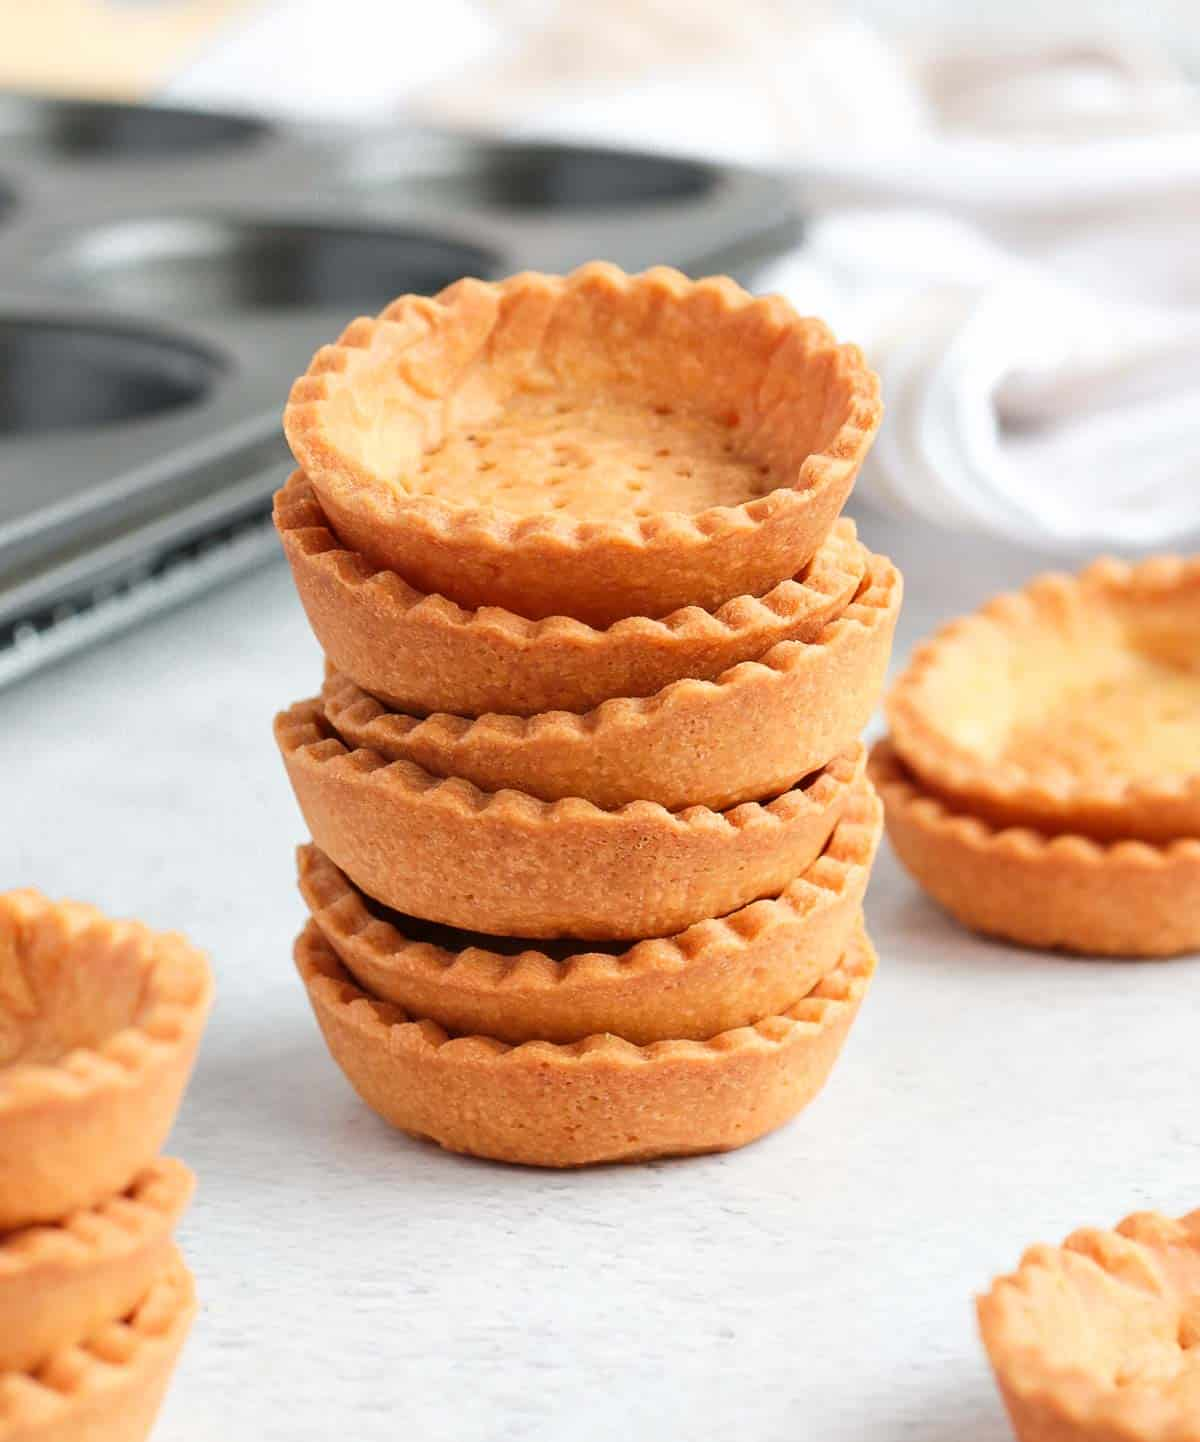 Mini tart shells stacked on a grey surface.